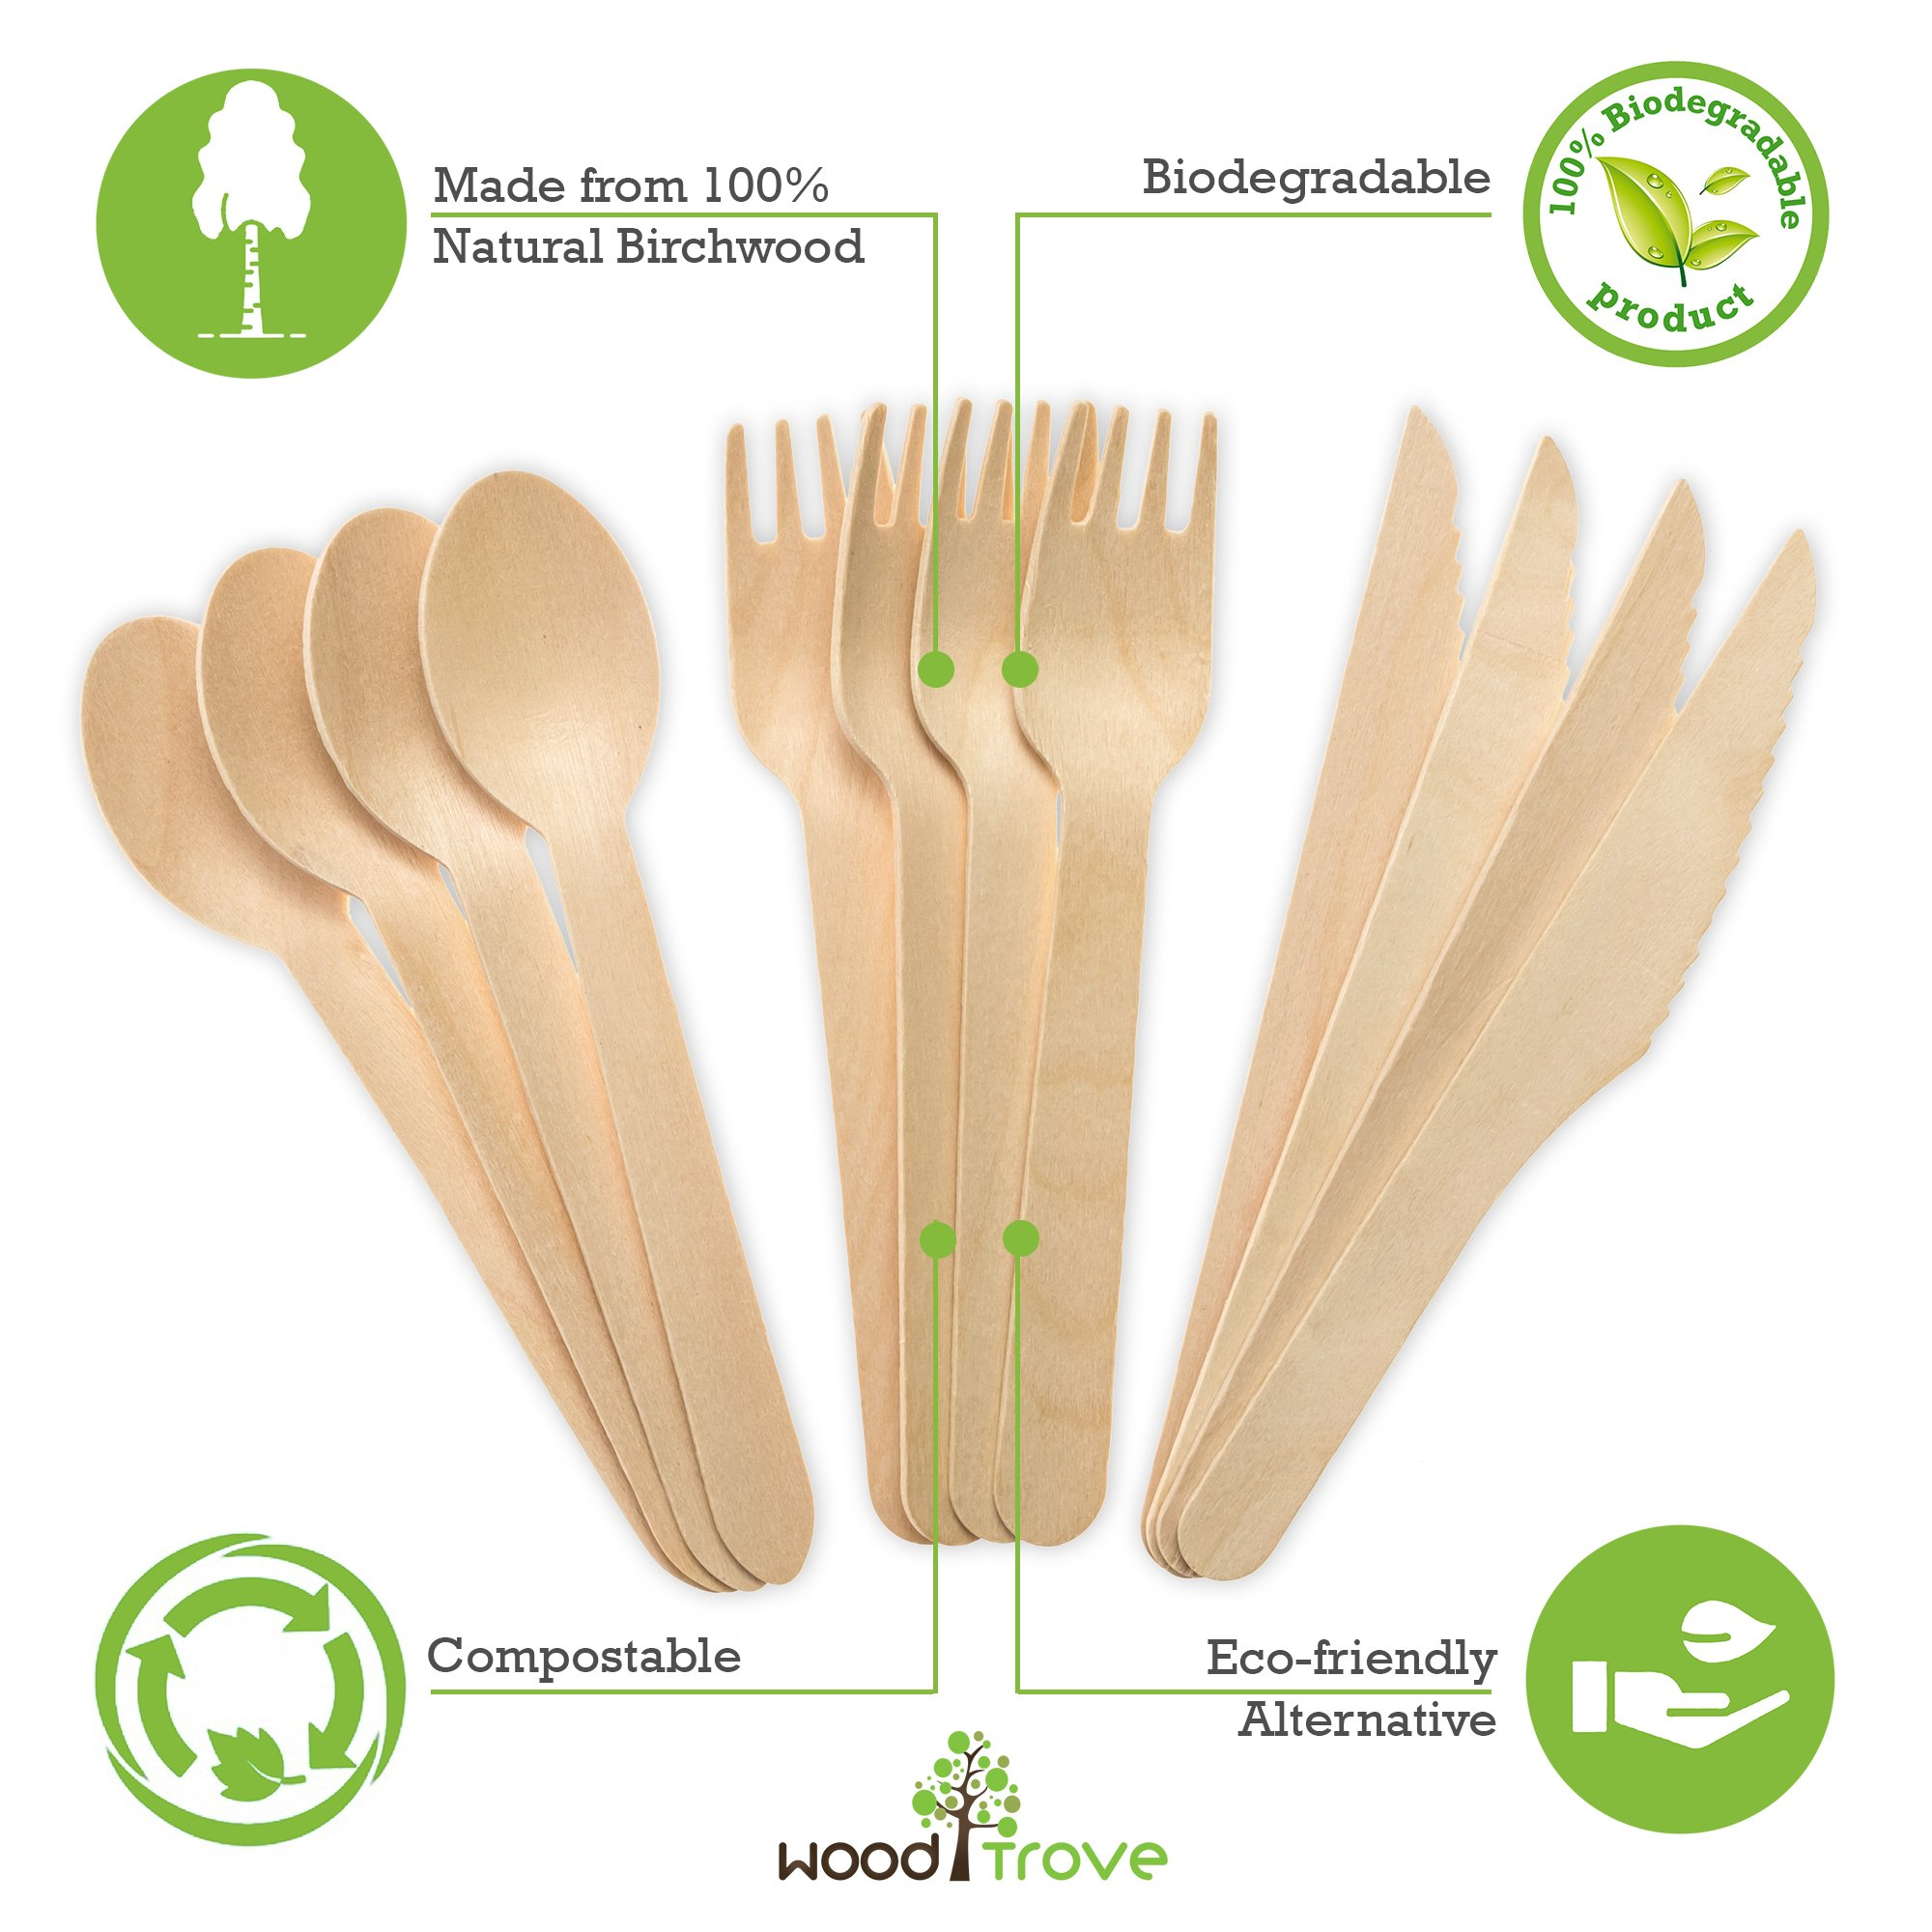 Wooden Disposable Utensils Set 100 Forks 50 Spoons 50 Knives Wood Cutlery Eco Friendly Compostable Biodegradable Silverware Party Flatware Kitchen Serving Eating Picnic Wedding Green Natural Utensil by Wood Trove (Image #2)